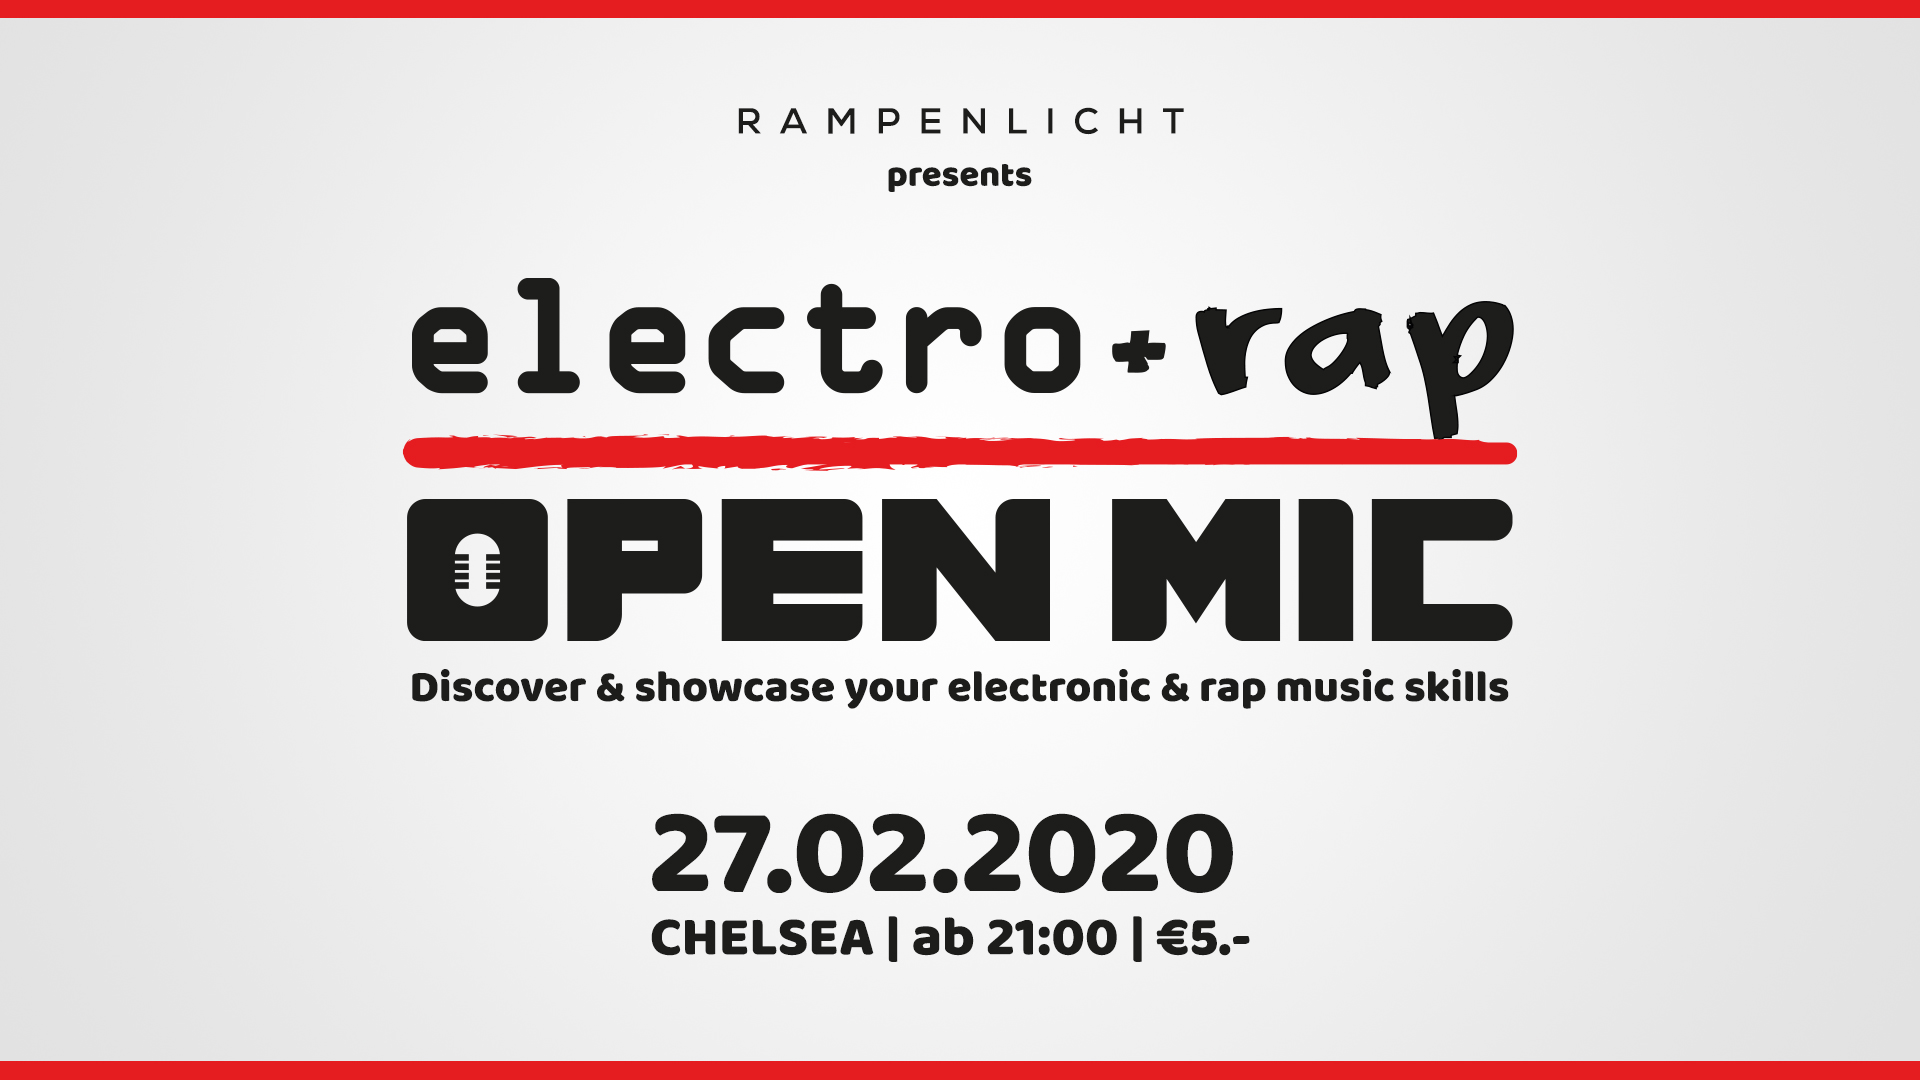 Electro & Rap Open Mic presented by Rampenlicht am 27. February 2020 @ Chelsea.